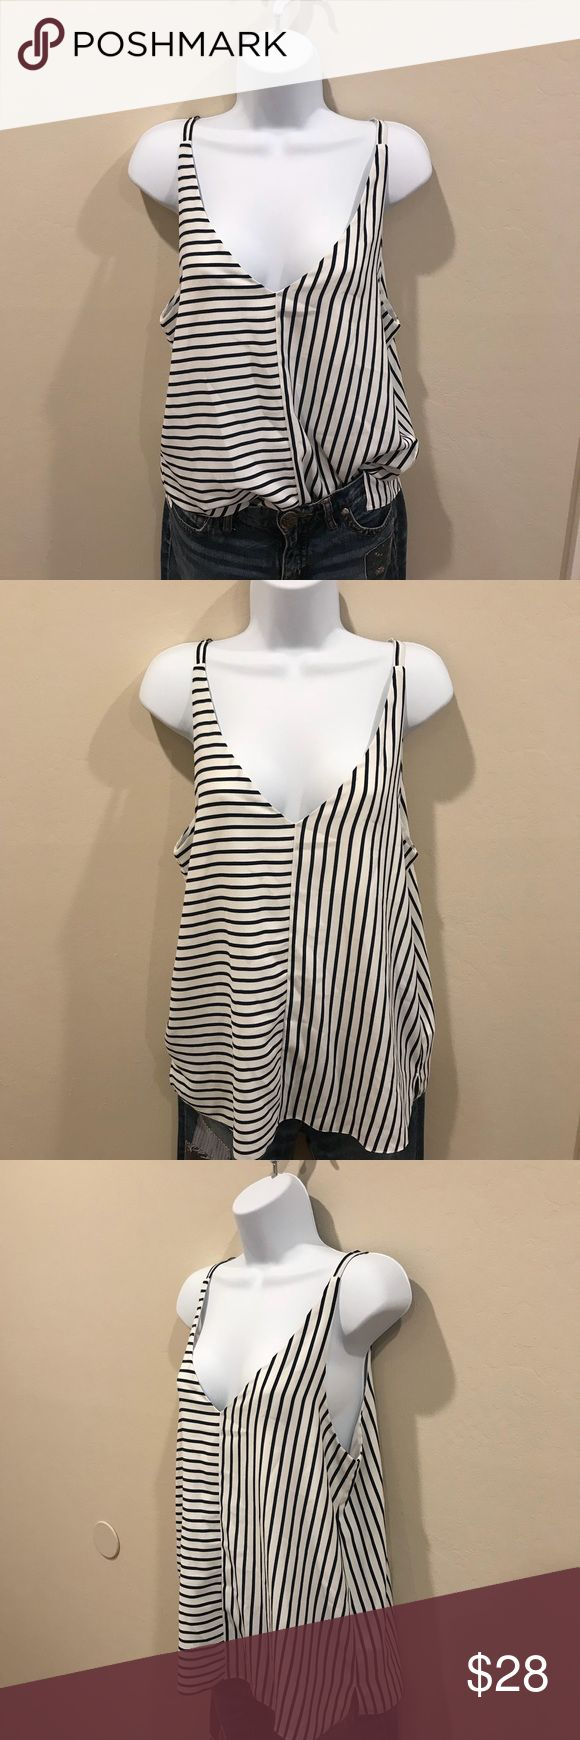 NWT Topshop navy striped cami Super chic navy striped cami mixed with horizontal and very wild lines. Crisscross v on the back. Side slits on the bottom hem. Versatile and goes with any outfit. No stains or rips. Measurements in the last picture. Topshop Tops Camisoles